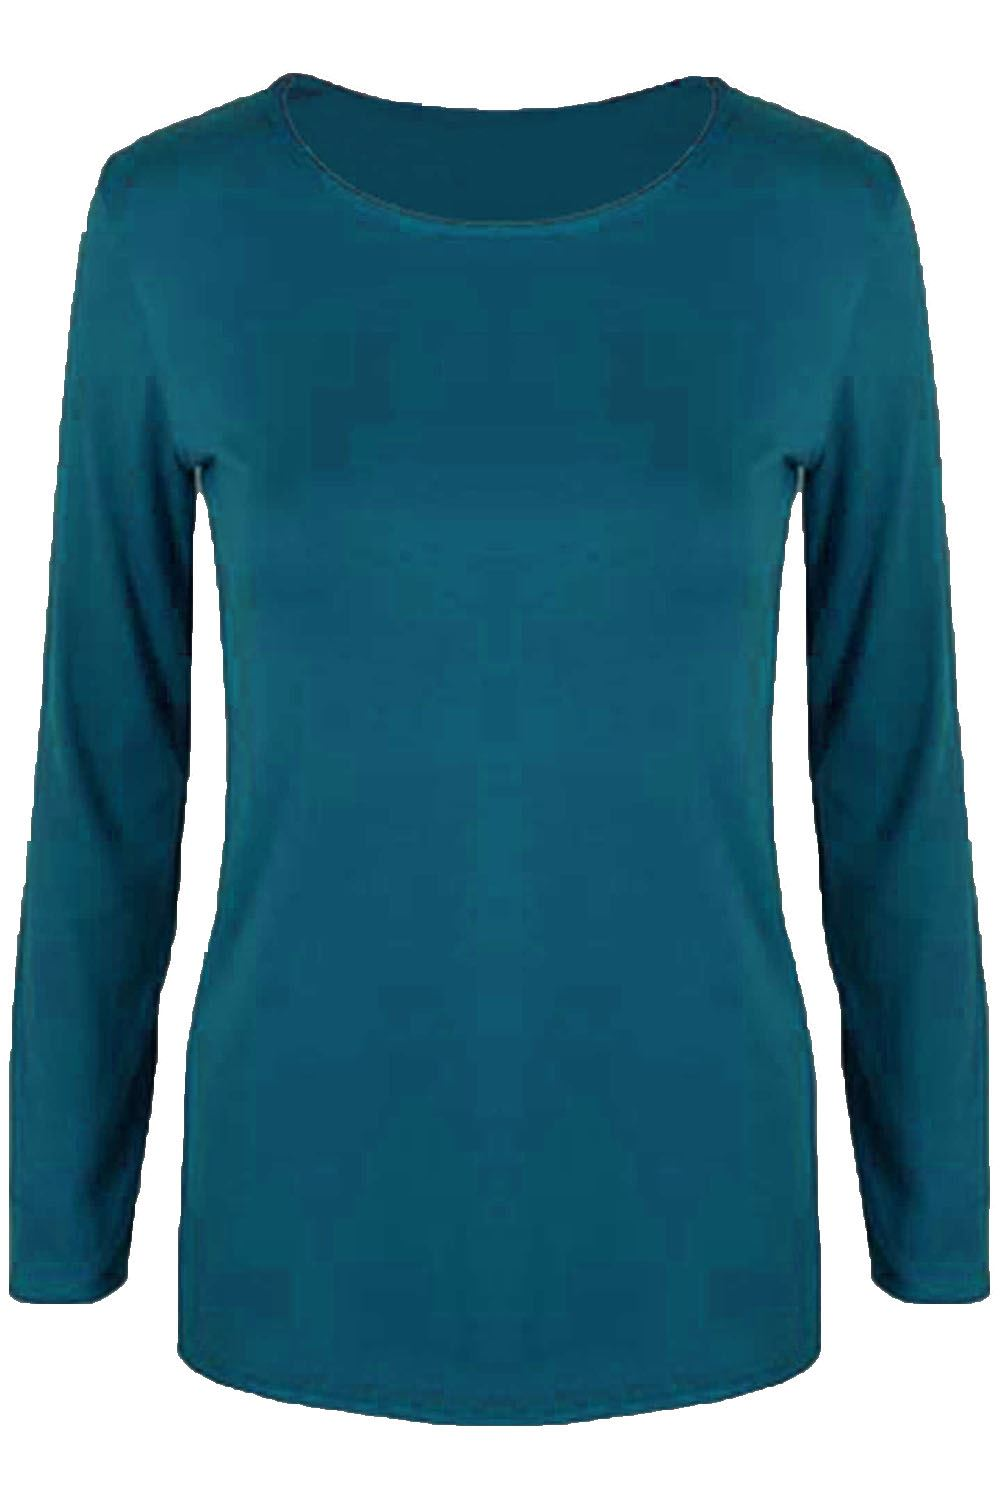 Womens t shirt ladies plain casual long sleeve fit round for Round neck t shirts for ladies